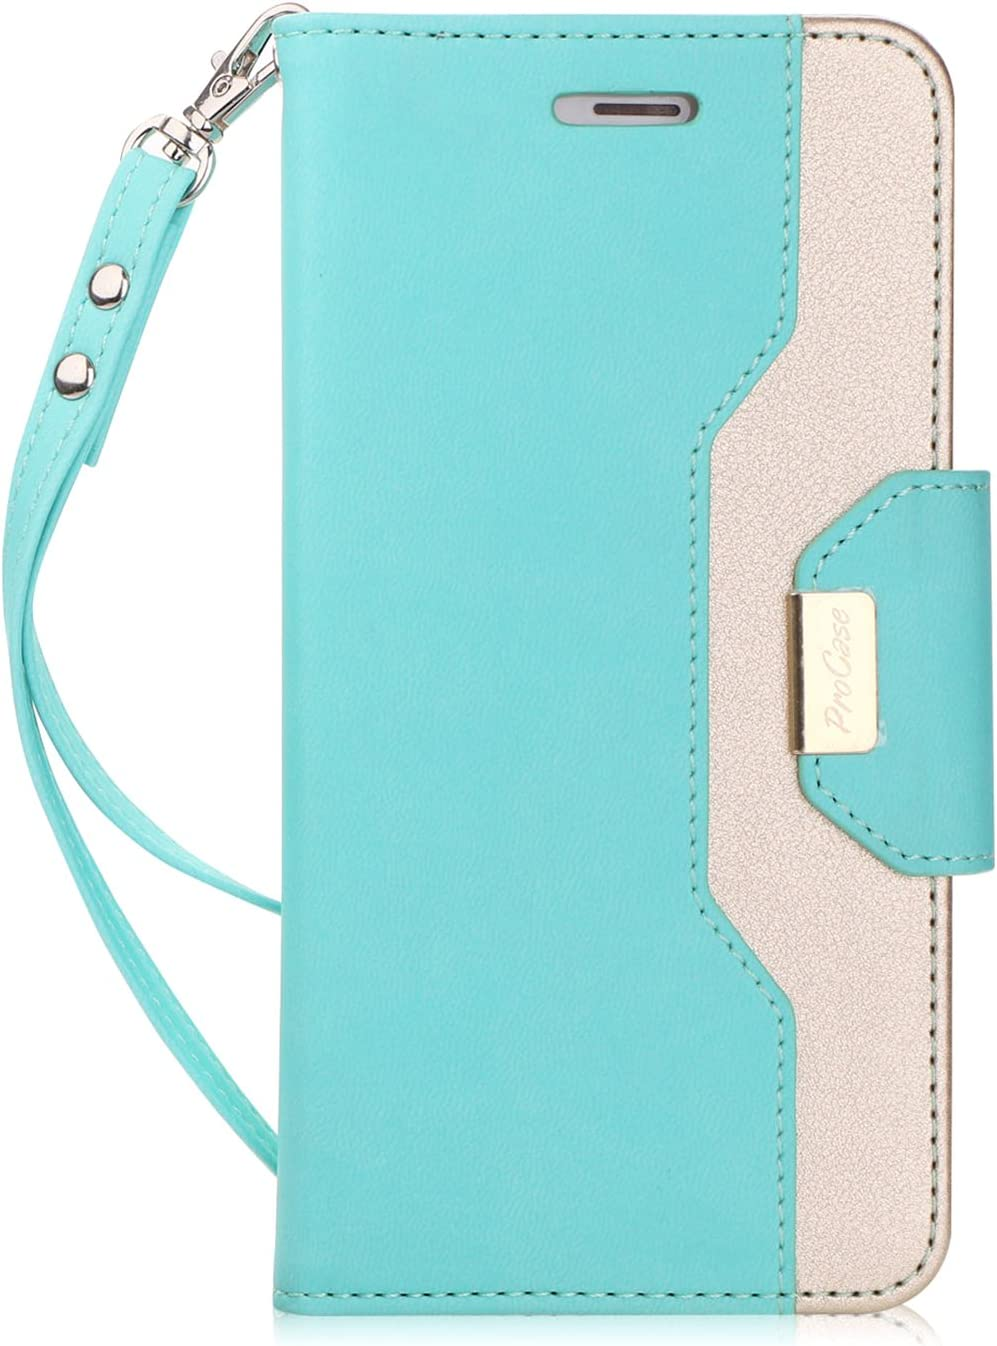 ProCase iPhone 8 Plus/7 Plus Wallet Case, Flip Fold Card Case Stylish Slim Stand Cover with Wallet Case for Apple iPhone 8 Plus/iPhone 7 Plus -MintGreen